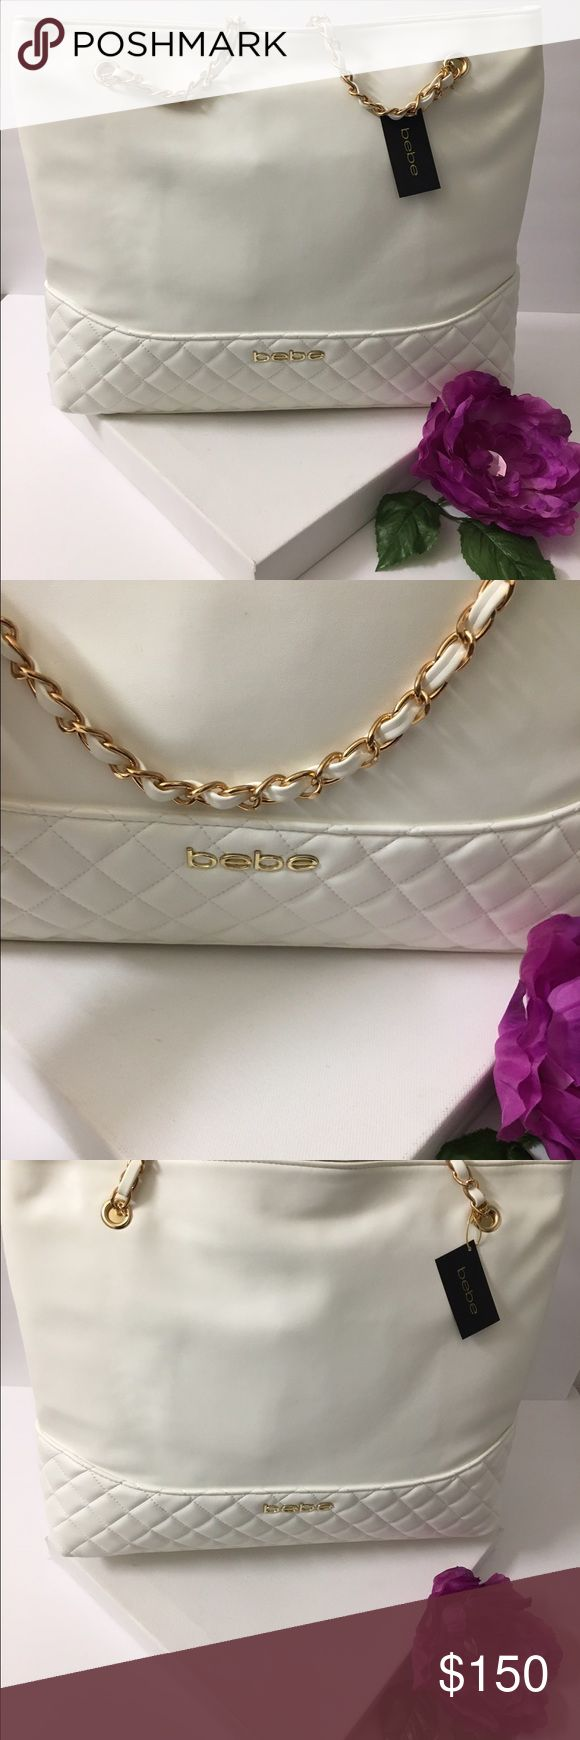 💫💋BeBe couture oversized Quilted shoulder bag💯 Authentic Bebe couture extra large shoulder bag with gold chain handles .  Has gold zipper to close on top . Brand new with tag ! I've been in beauty industry for 12+ years I have a lot connections to multiple high end brands Etc . This needs a home its gorg!💯💯🎉🎉👍🏼✨✨✨✨✨😉 bebe Bags Shoulder Bags